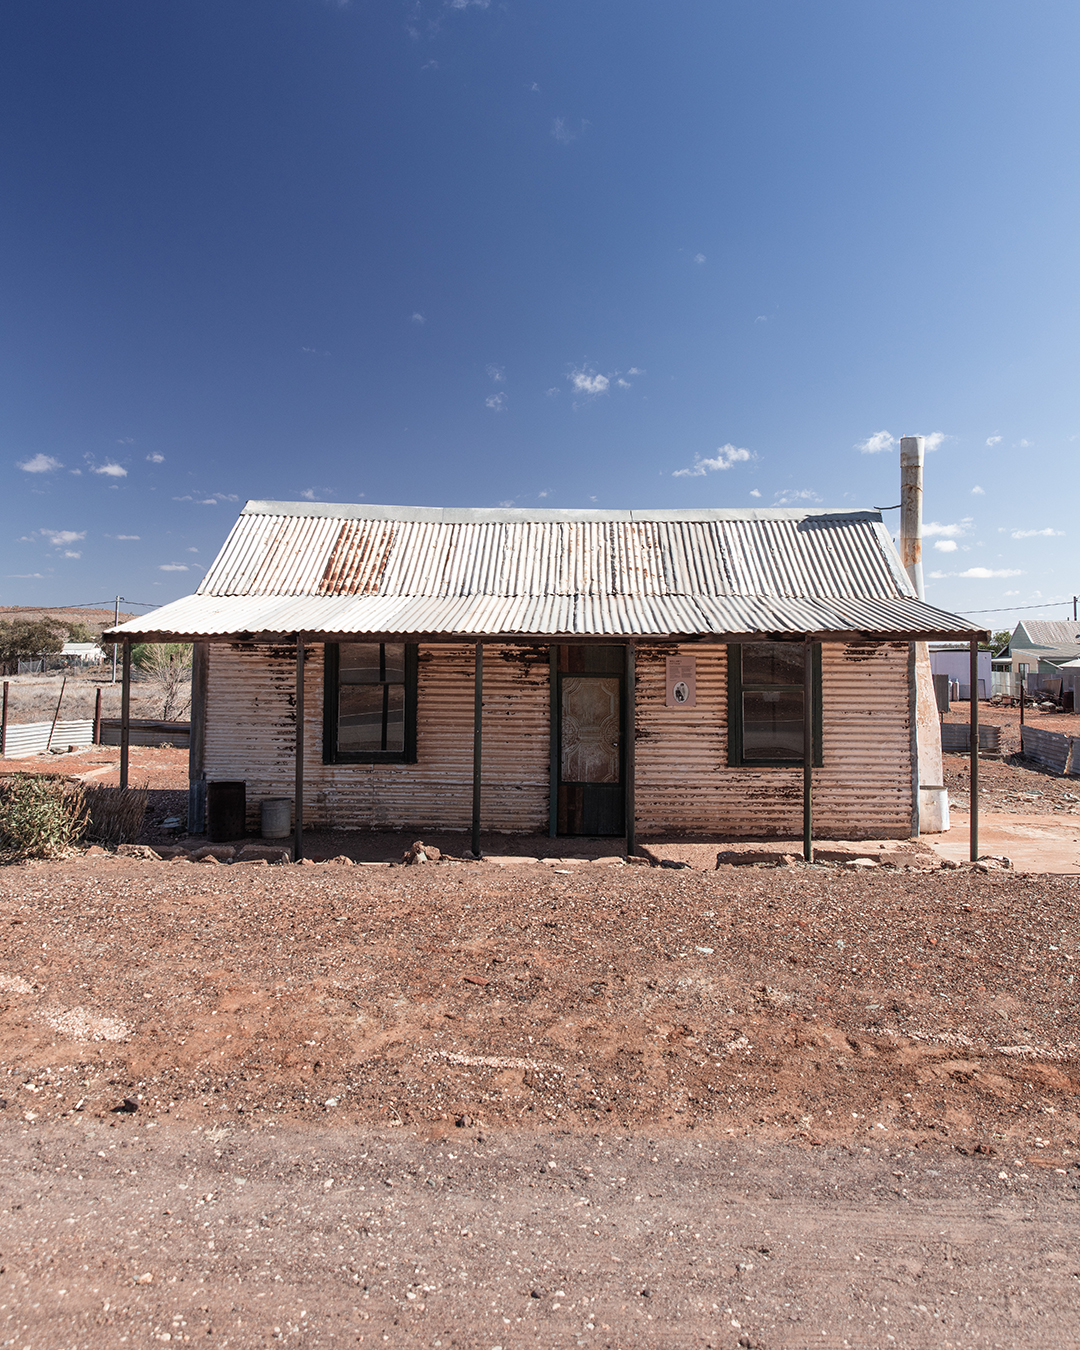 abandoned house in outback